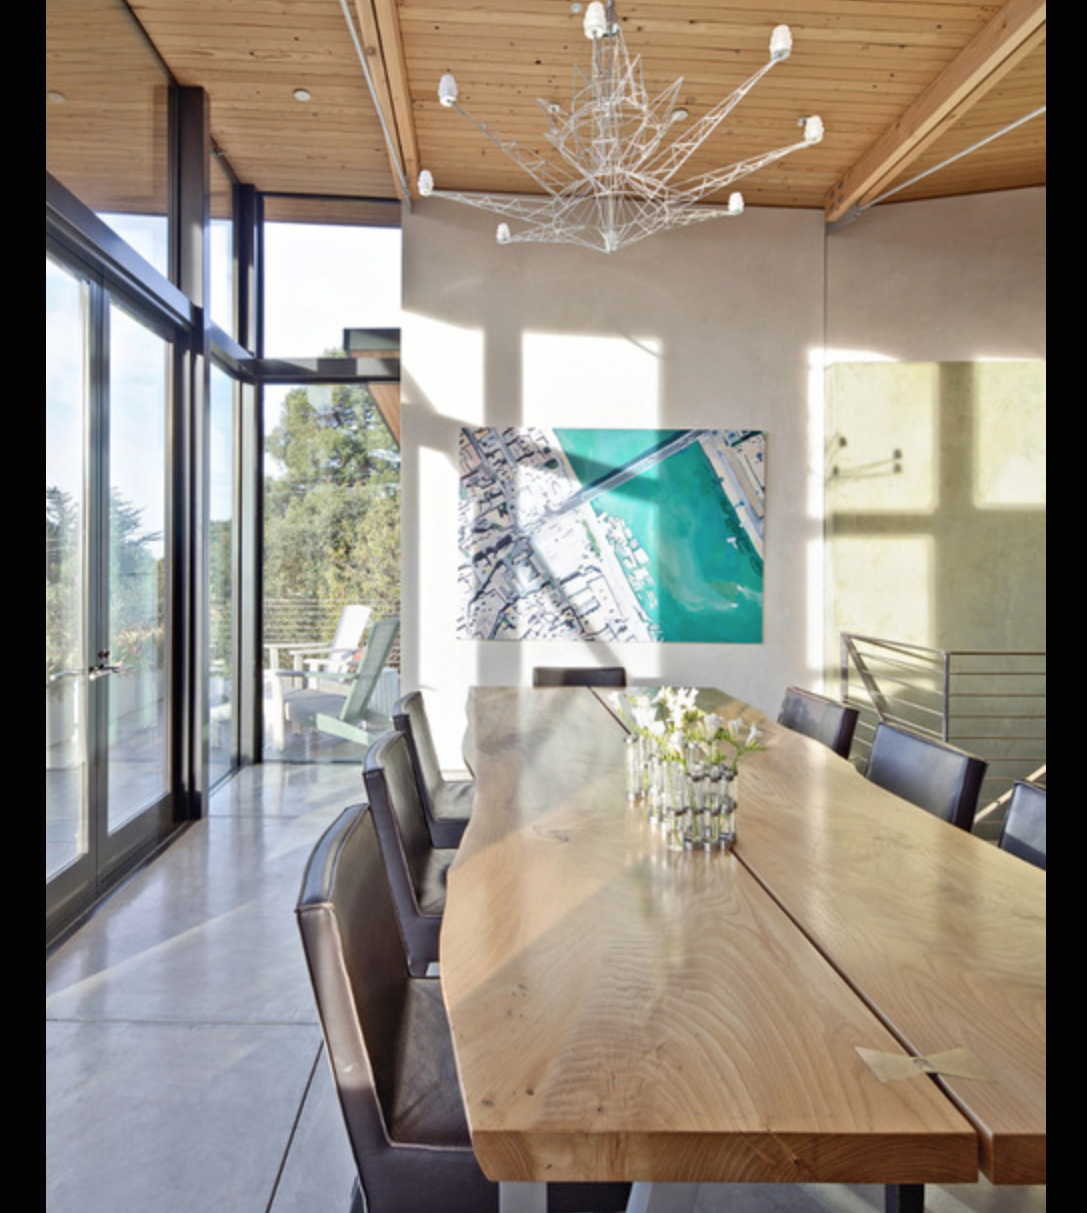 Screen Shot 2015-11-05 at 8.33.52 AM